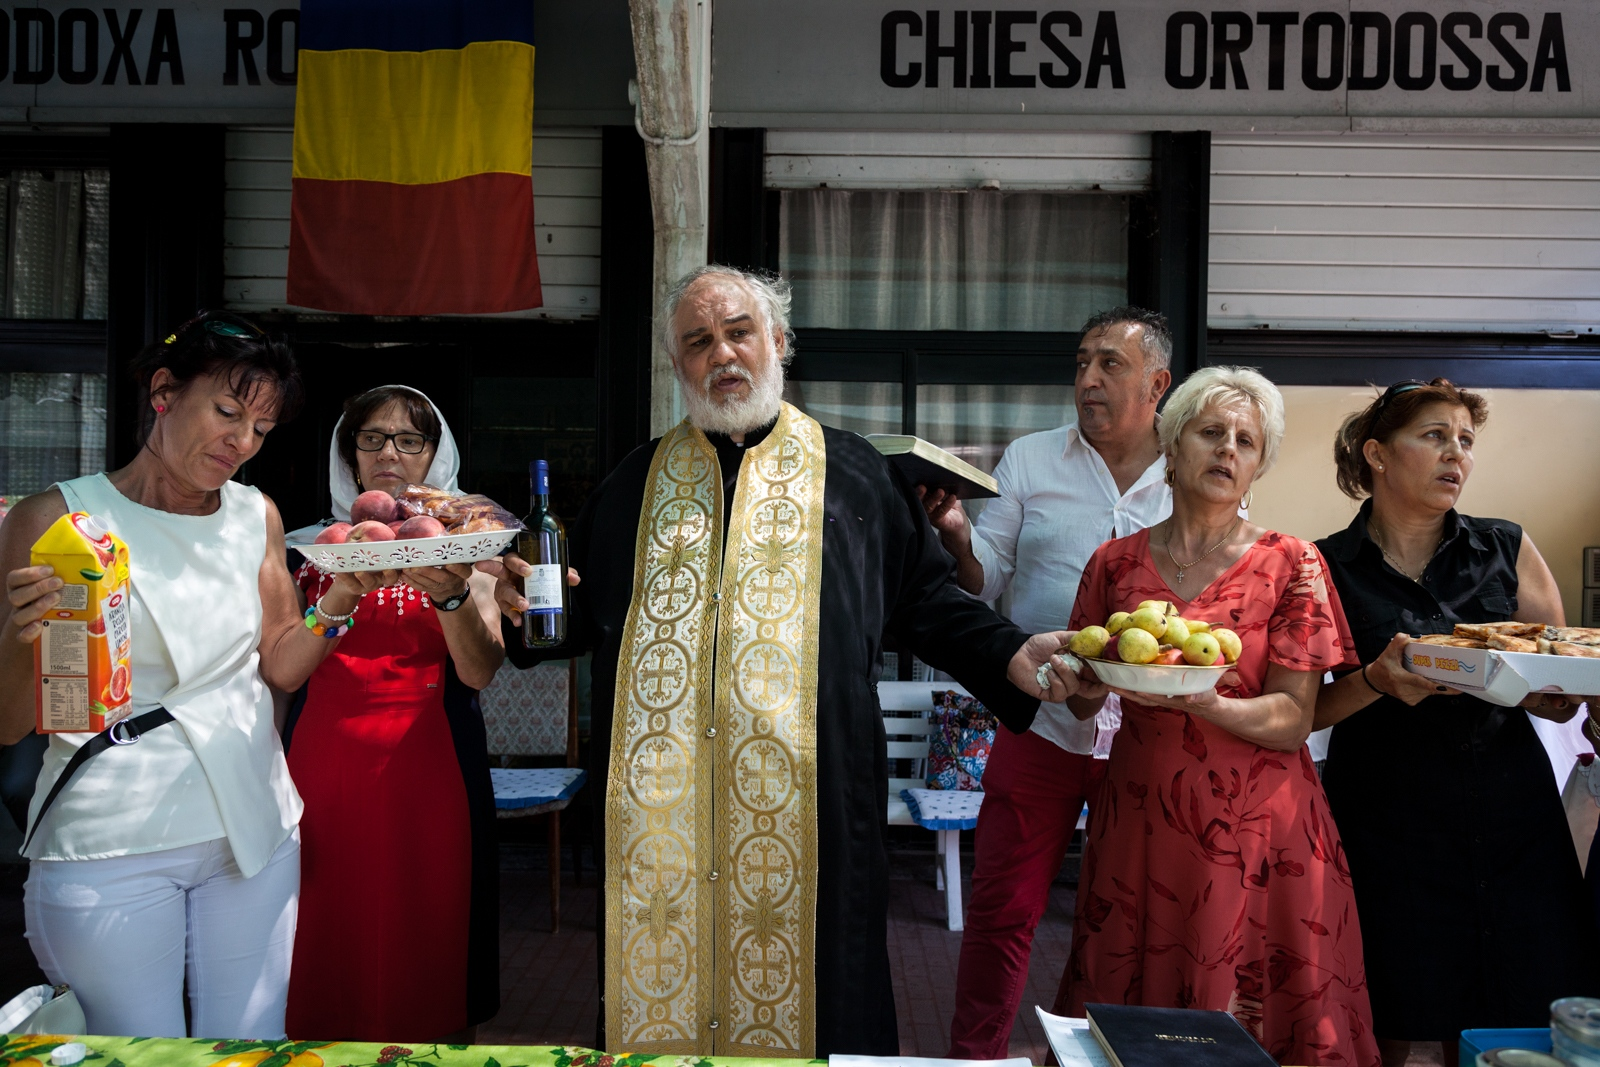 July 30, 2017 - Sunday celebration at the Romanian Orthodox Church in Tor Sapienza, located in a complex of public housing in Tor Sapienza, a working class neighborhood in southeast Rome. Padre Stefano is blessing the food that the faithfuls brought.